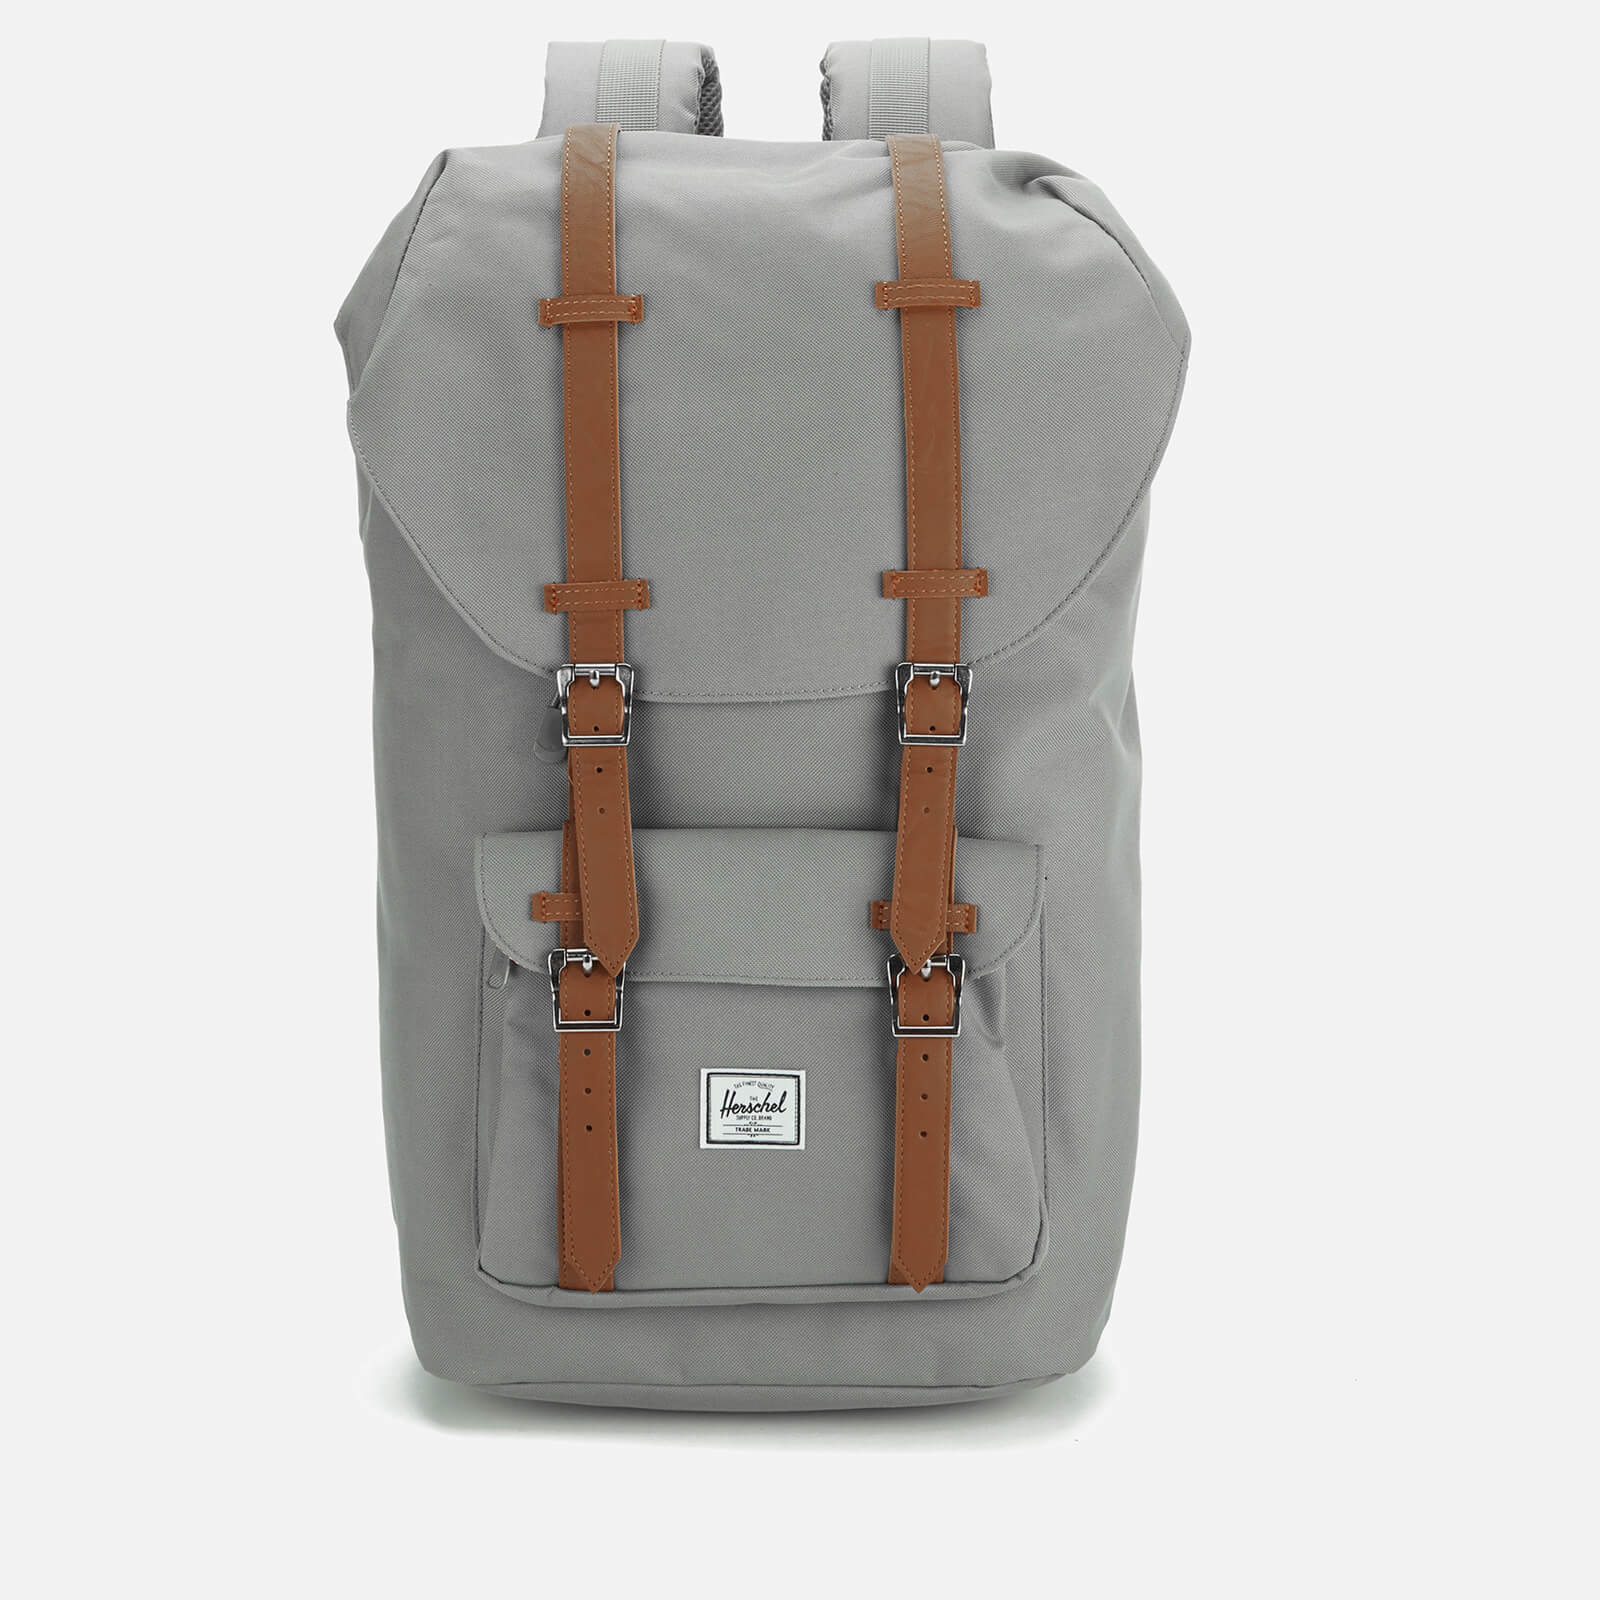 5bbfc728b40 Herschel Supply Co. Little America Backpack - Grey Tan Synthetic Leather